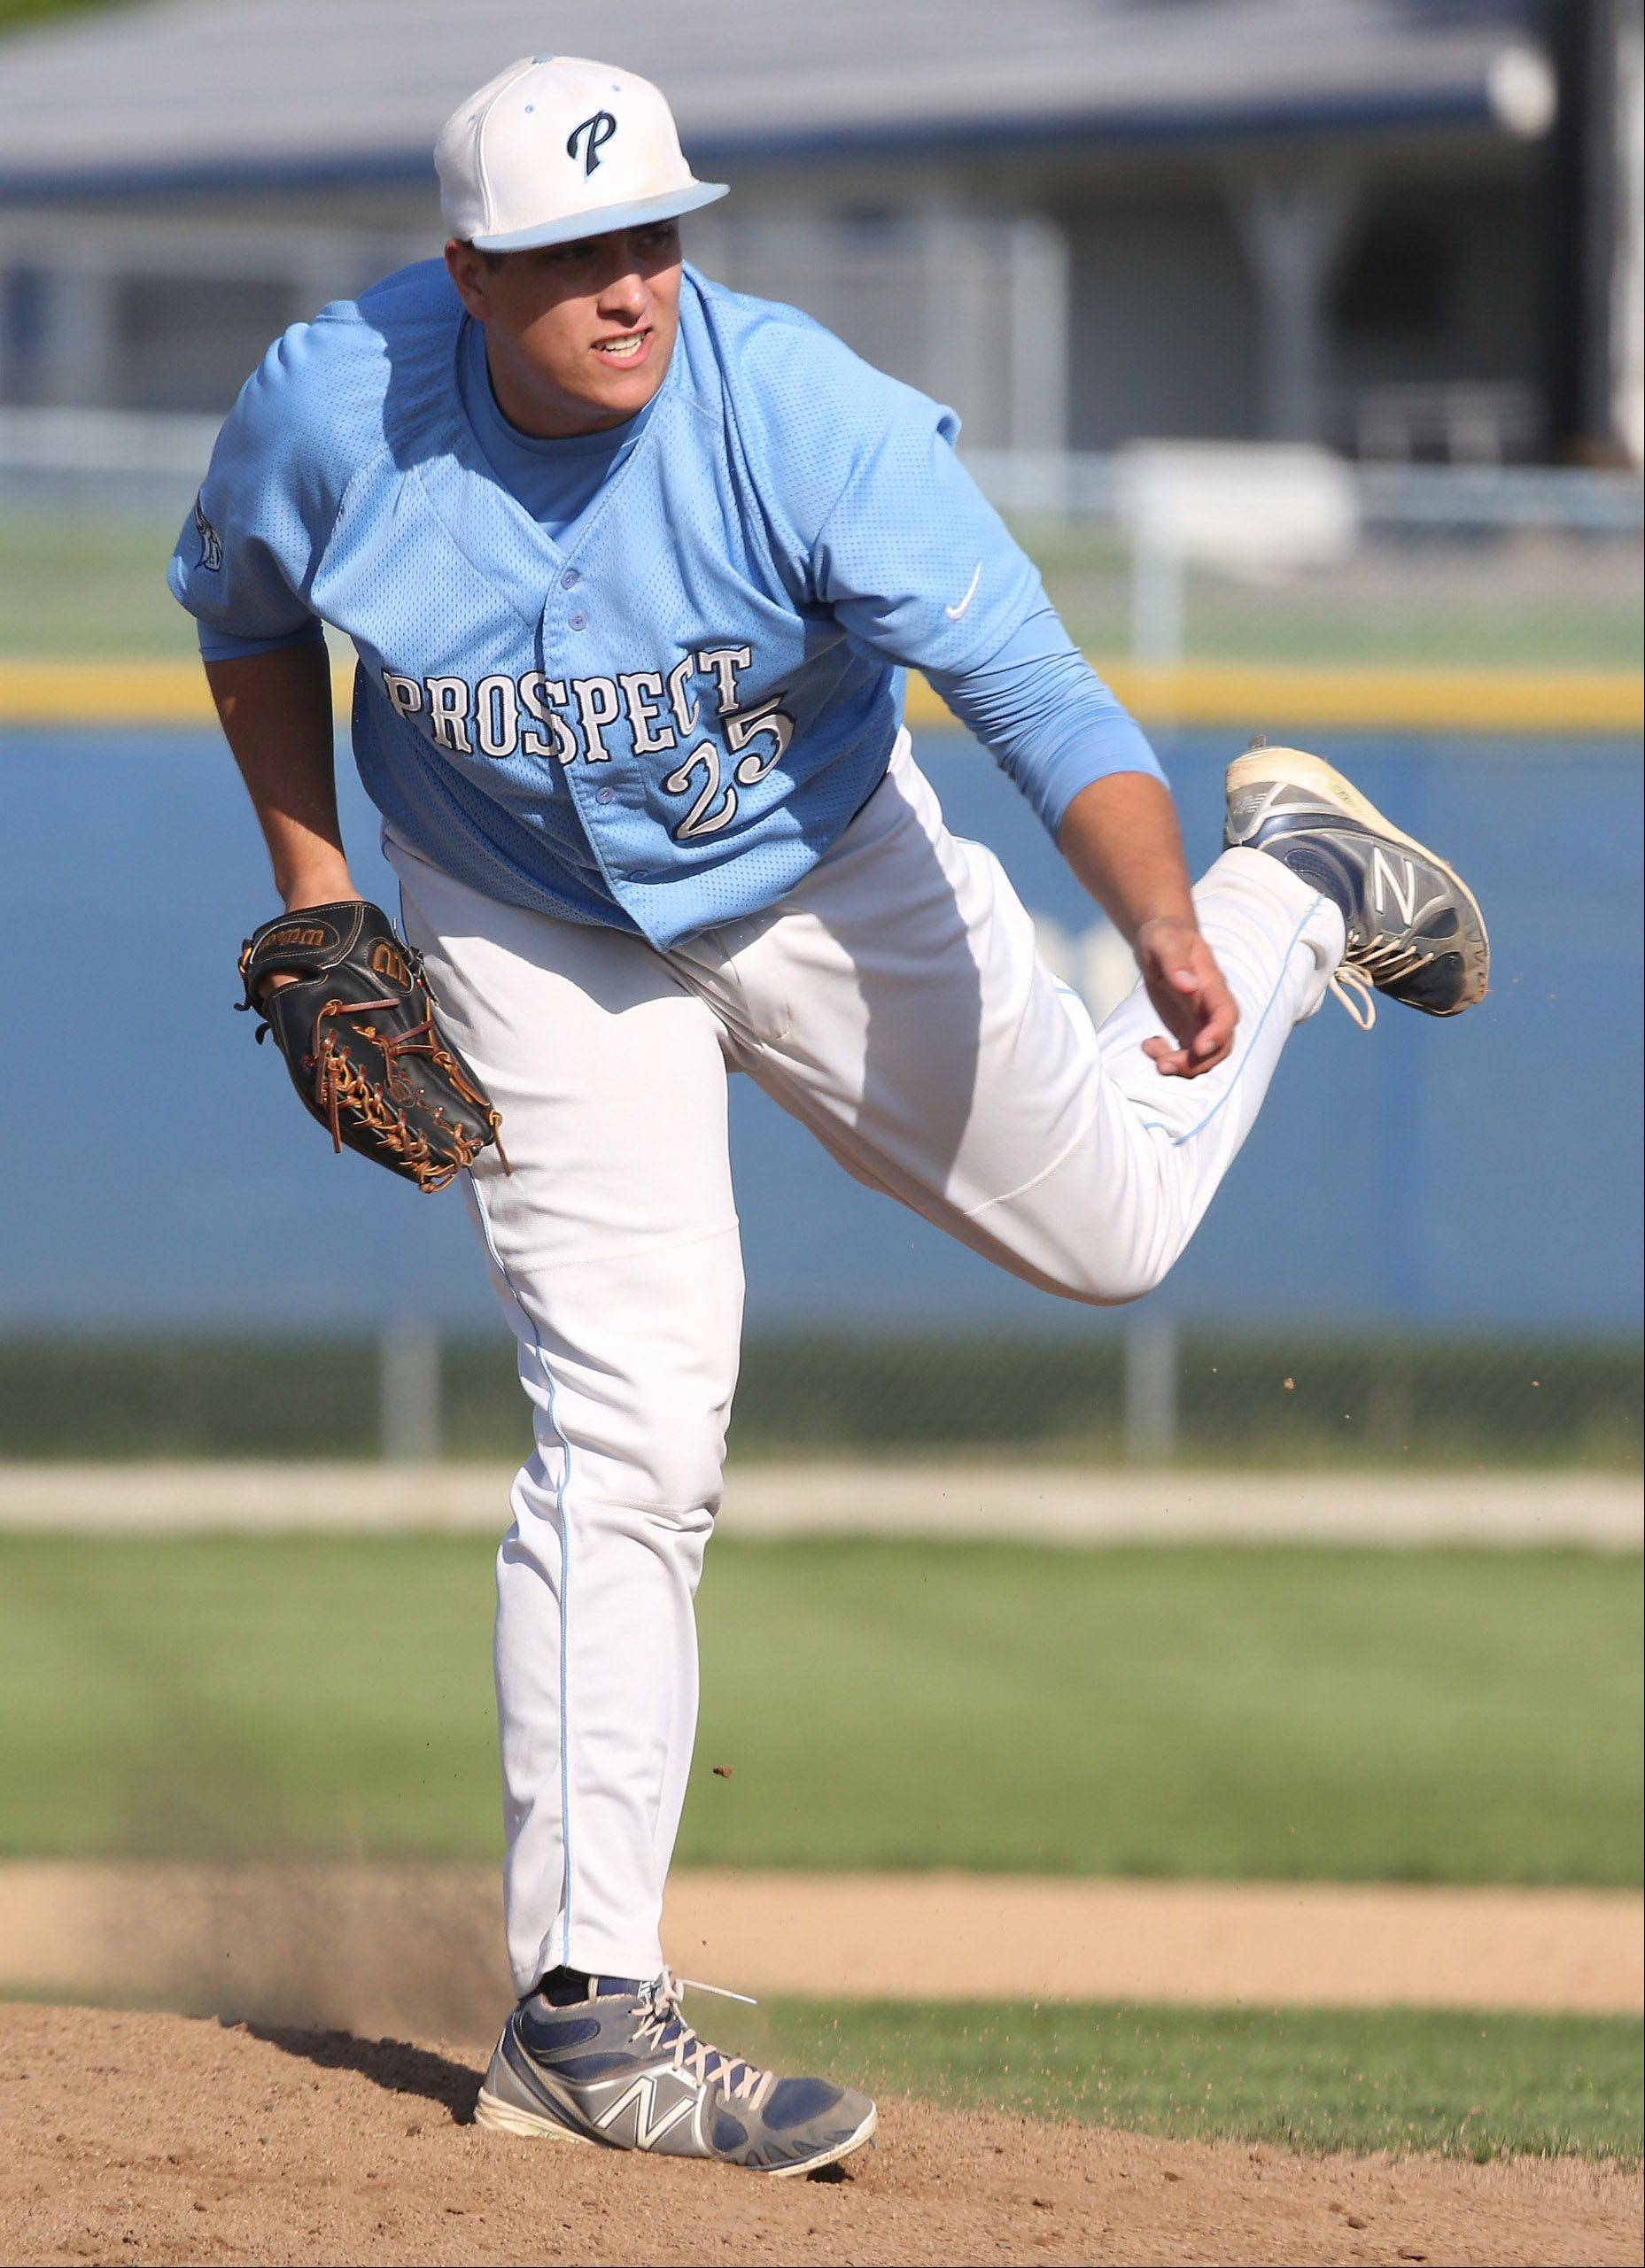 Prospect's Zach Smith delivers during Class 4A regional action at Lake Zurich on Monday.